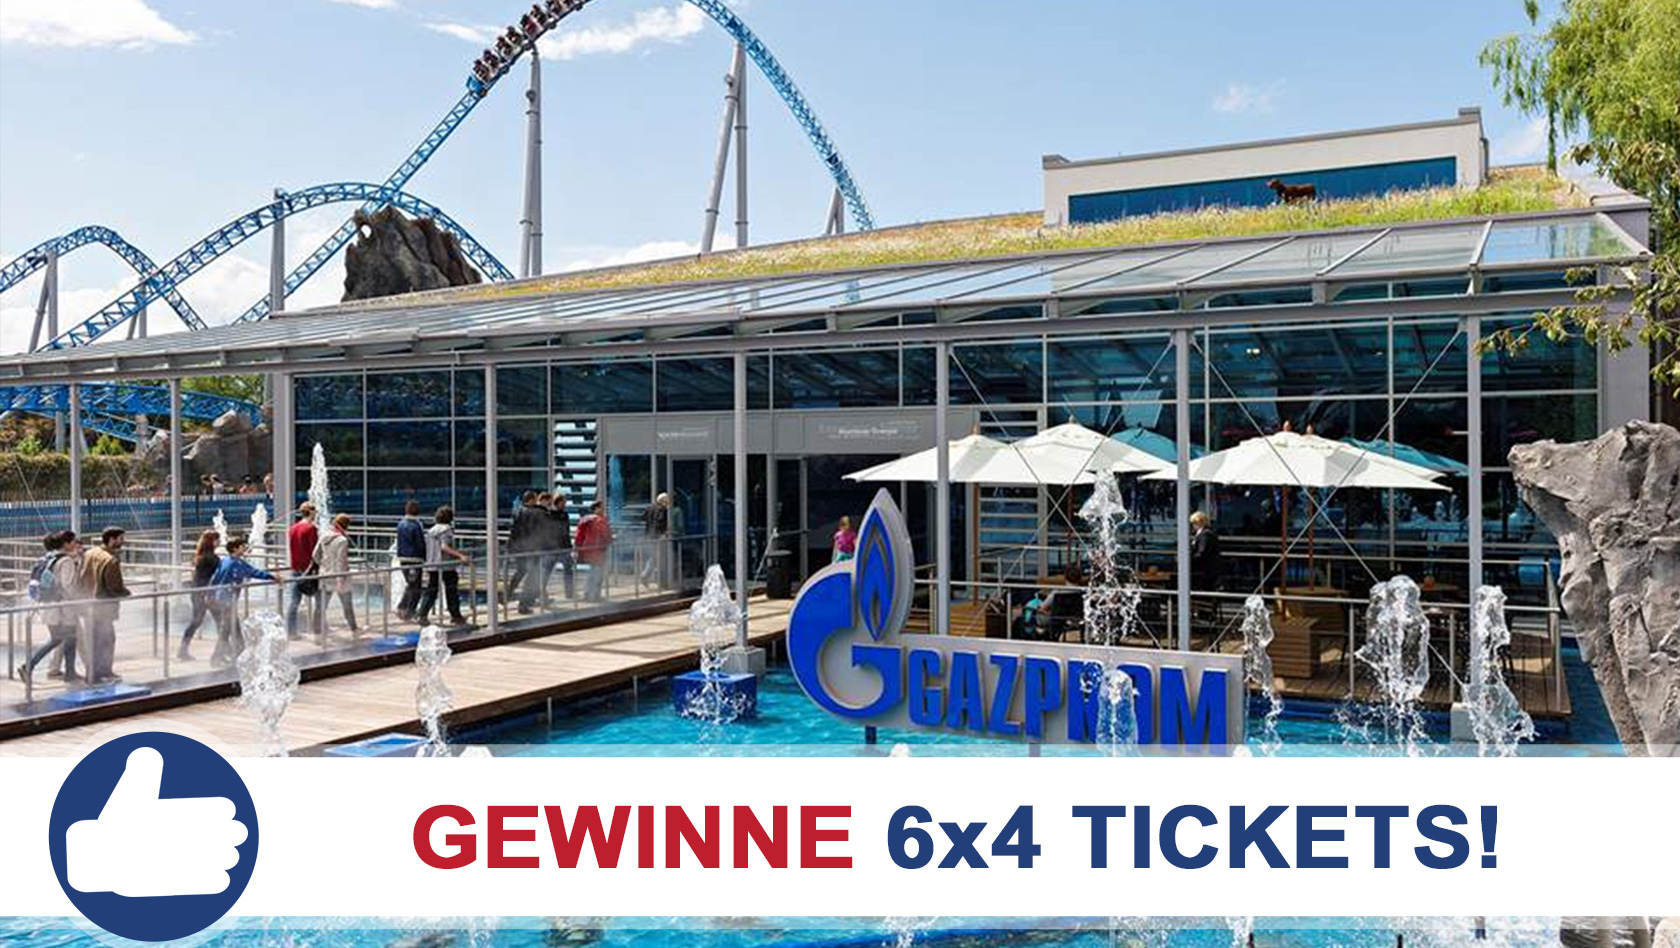 gewinne 6x4 europa park tickets freikartenfreitag. Black Bedroom Furniture Sets. Home Design Ideas